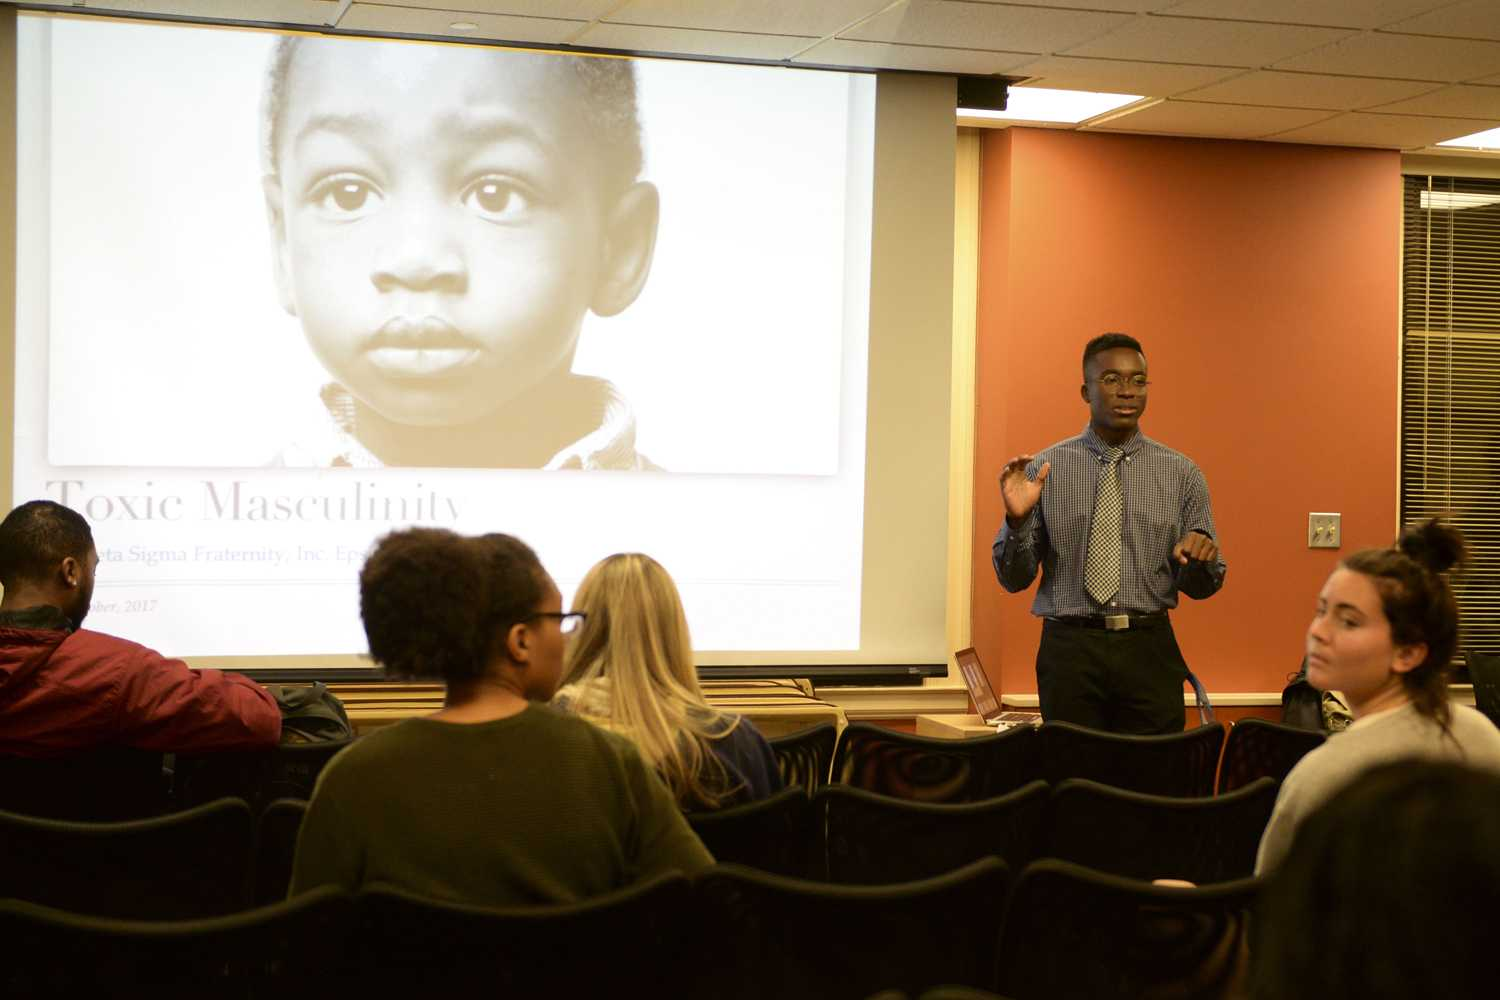 About 20 people attended a talk on toxic masculinity, hosted by Pitt's chapter of Phi Beta Sigma in the William Pitt Union Monday night. (Photo by Evan Meng | Staff Photographer)